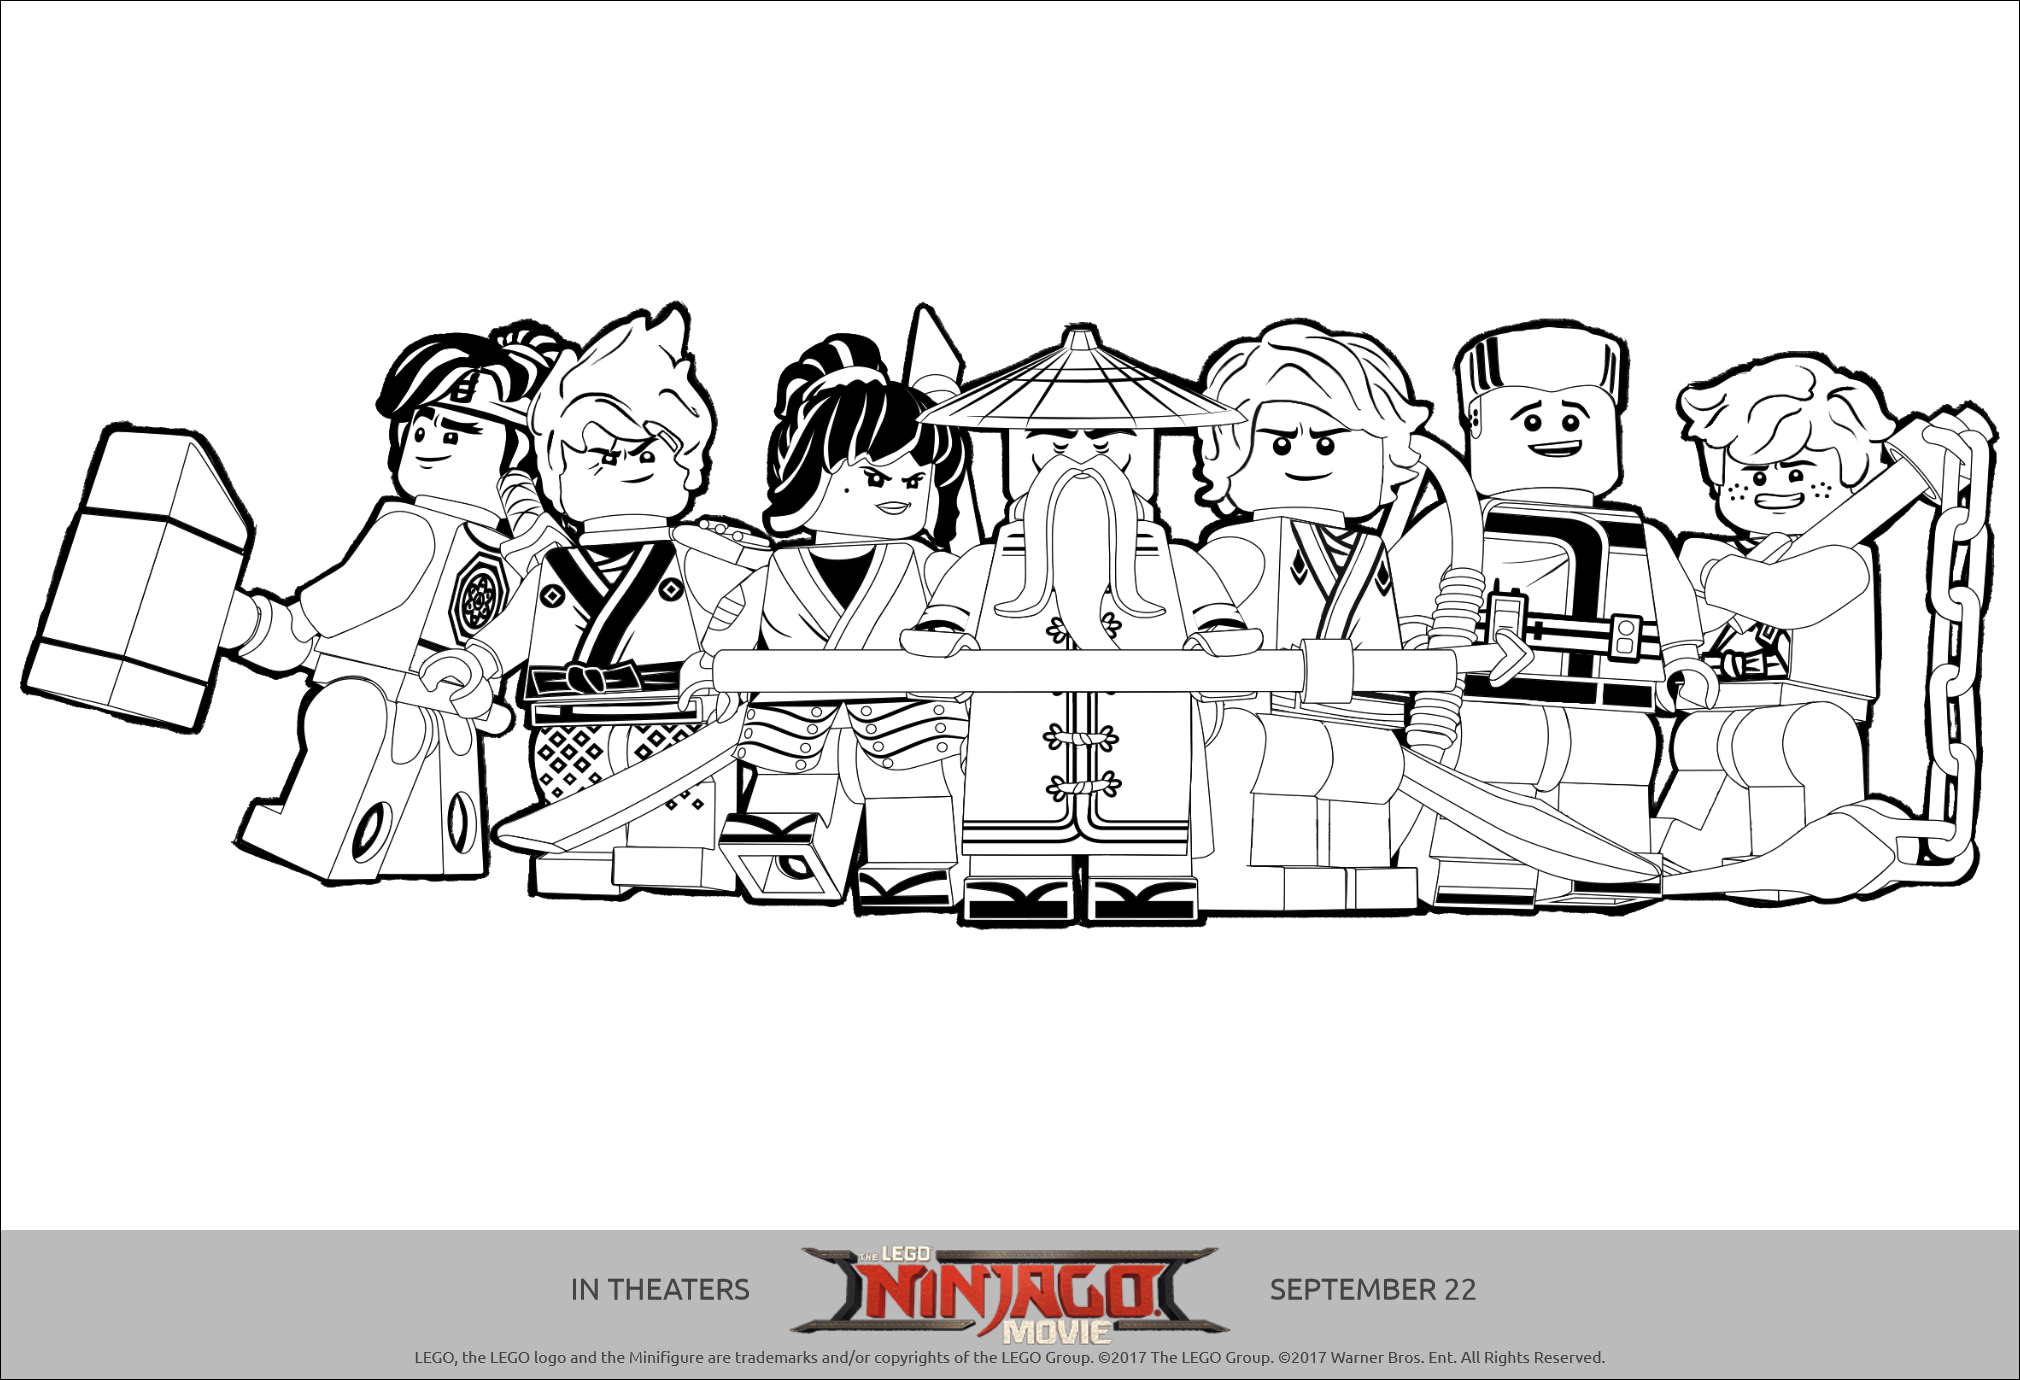 lego ninjago printables coloring pages and activity sheets - Ninjago Coloring Pages To Print